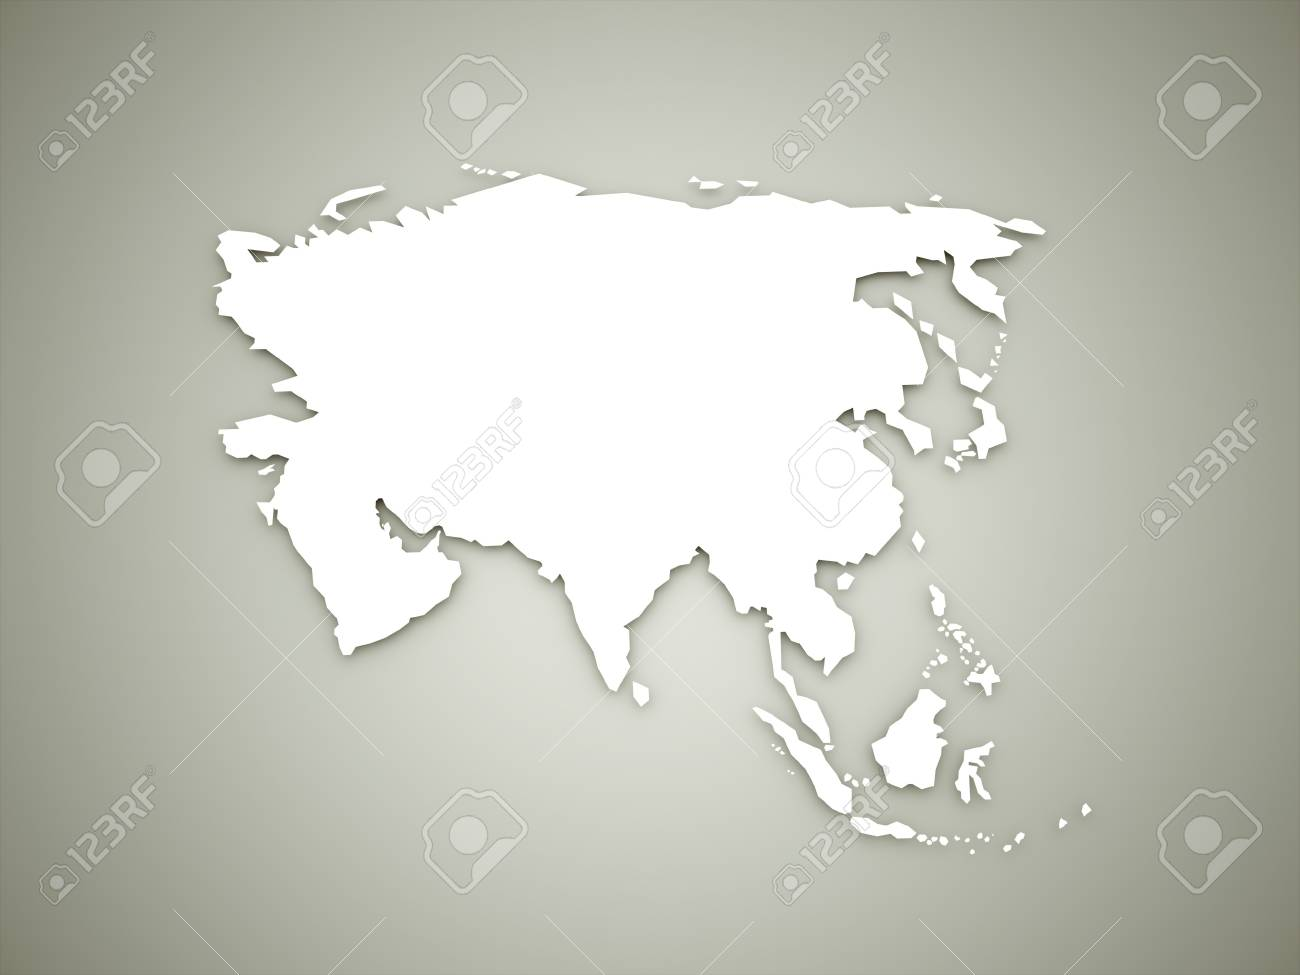 Asia Geografic Continental Map On Dark Background Stock Photo